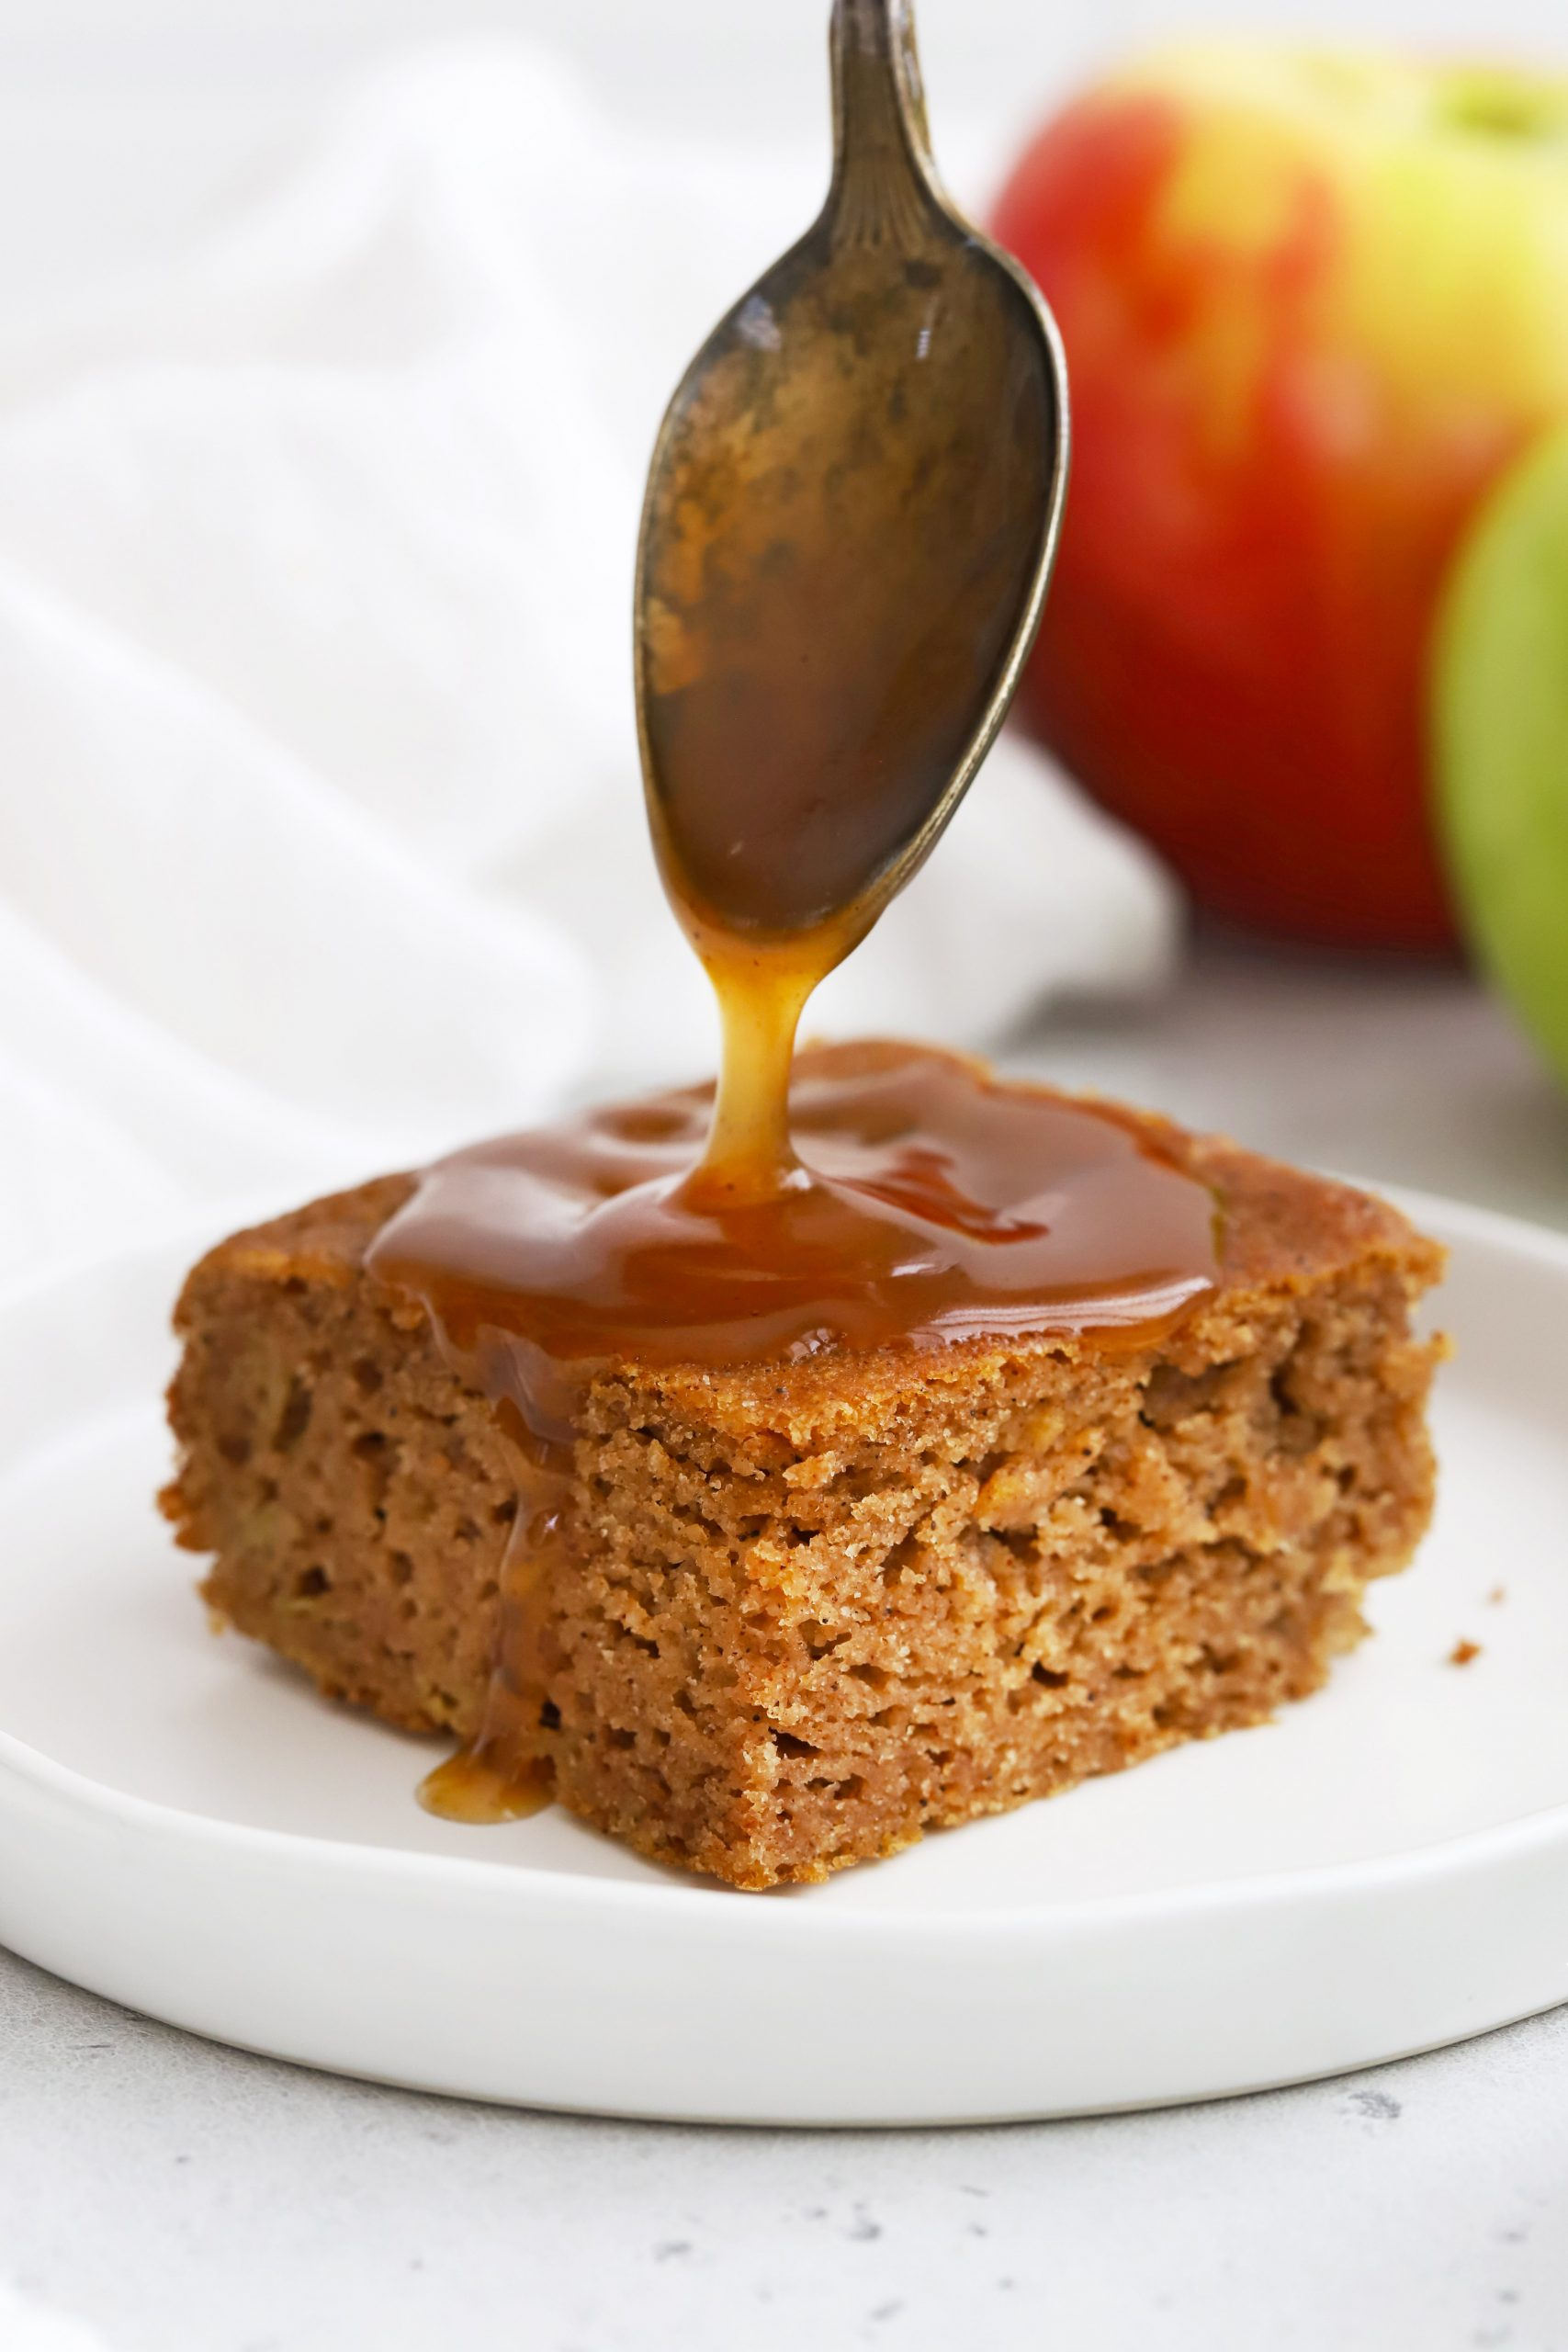 Cider Caramel Sauce being drizzled over apple spice cake